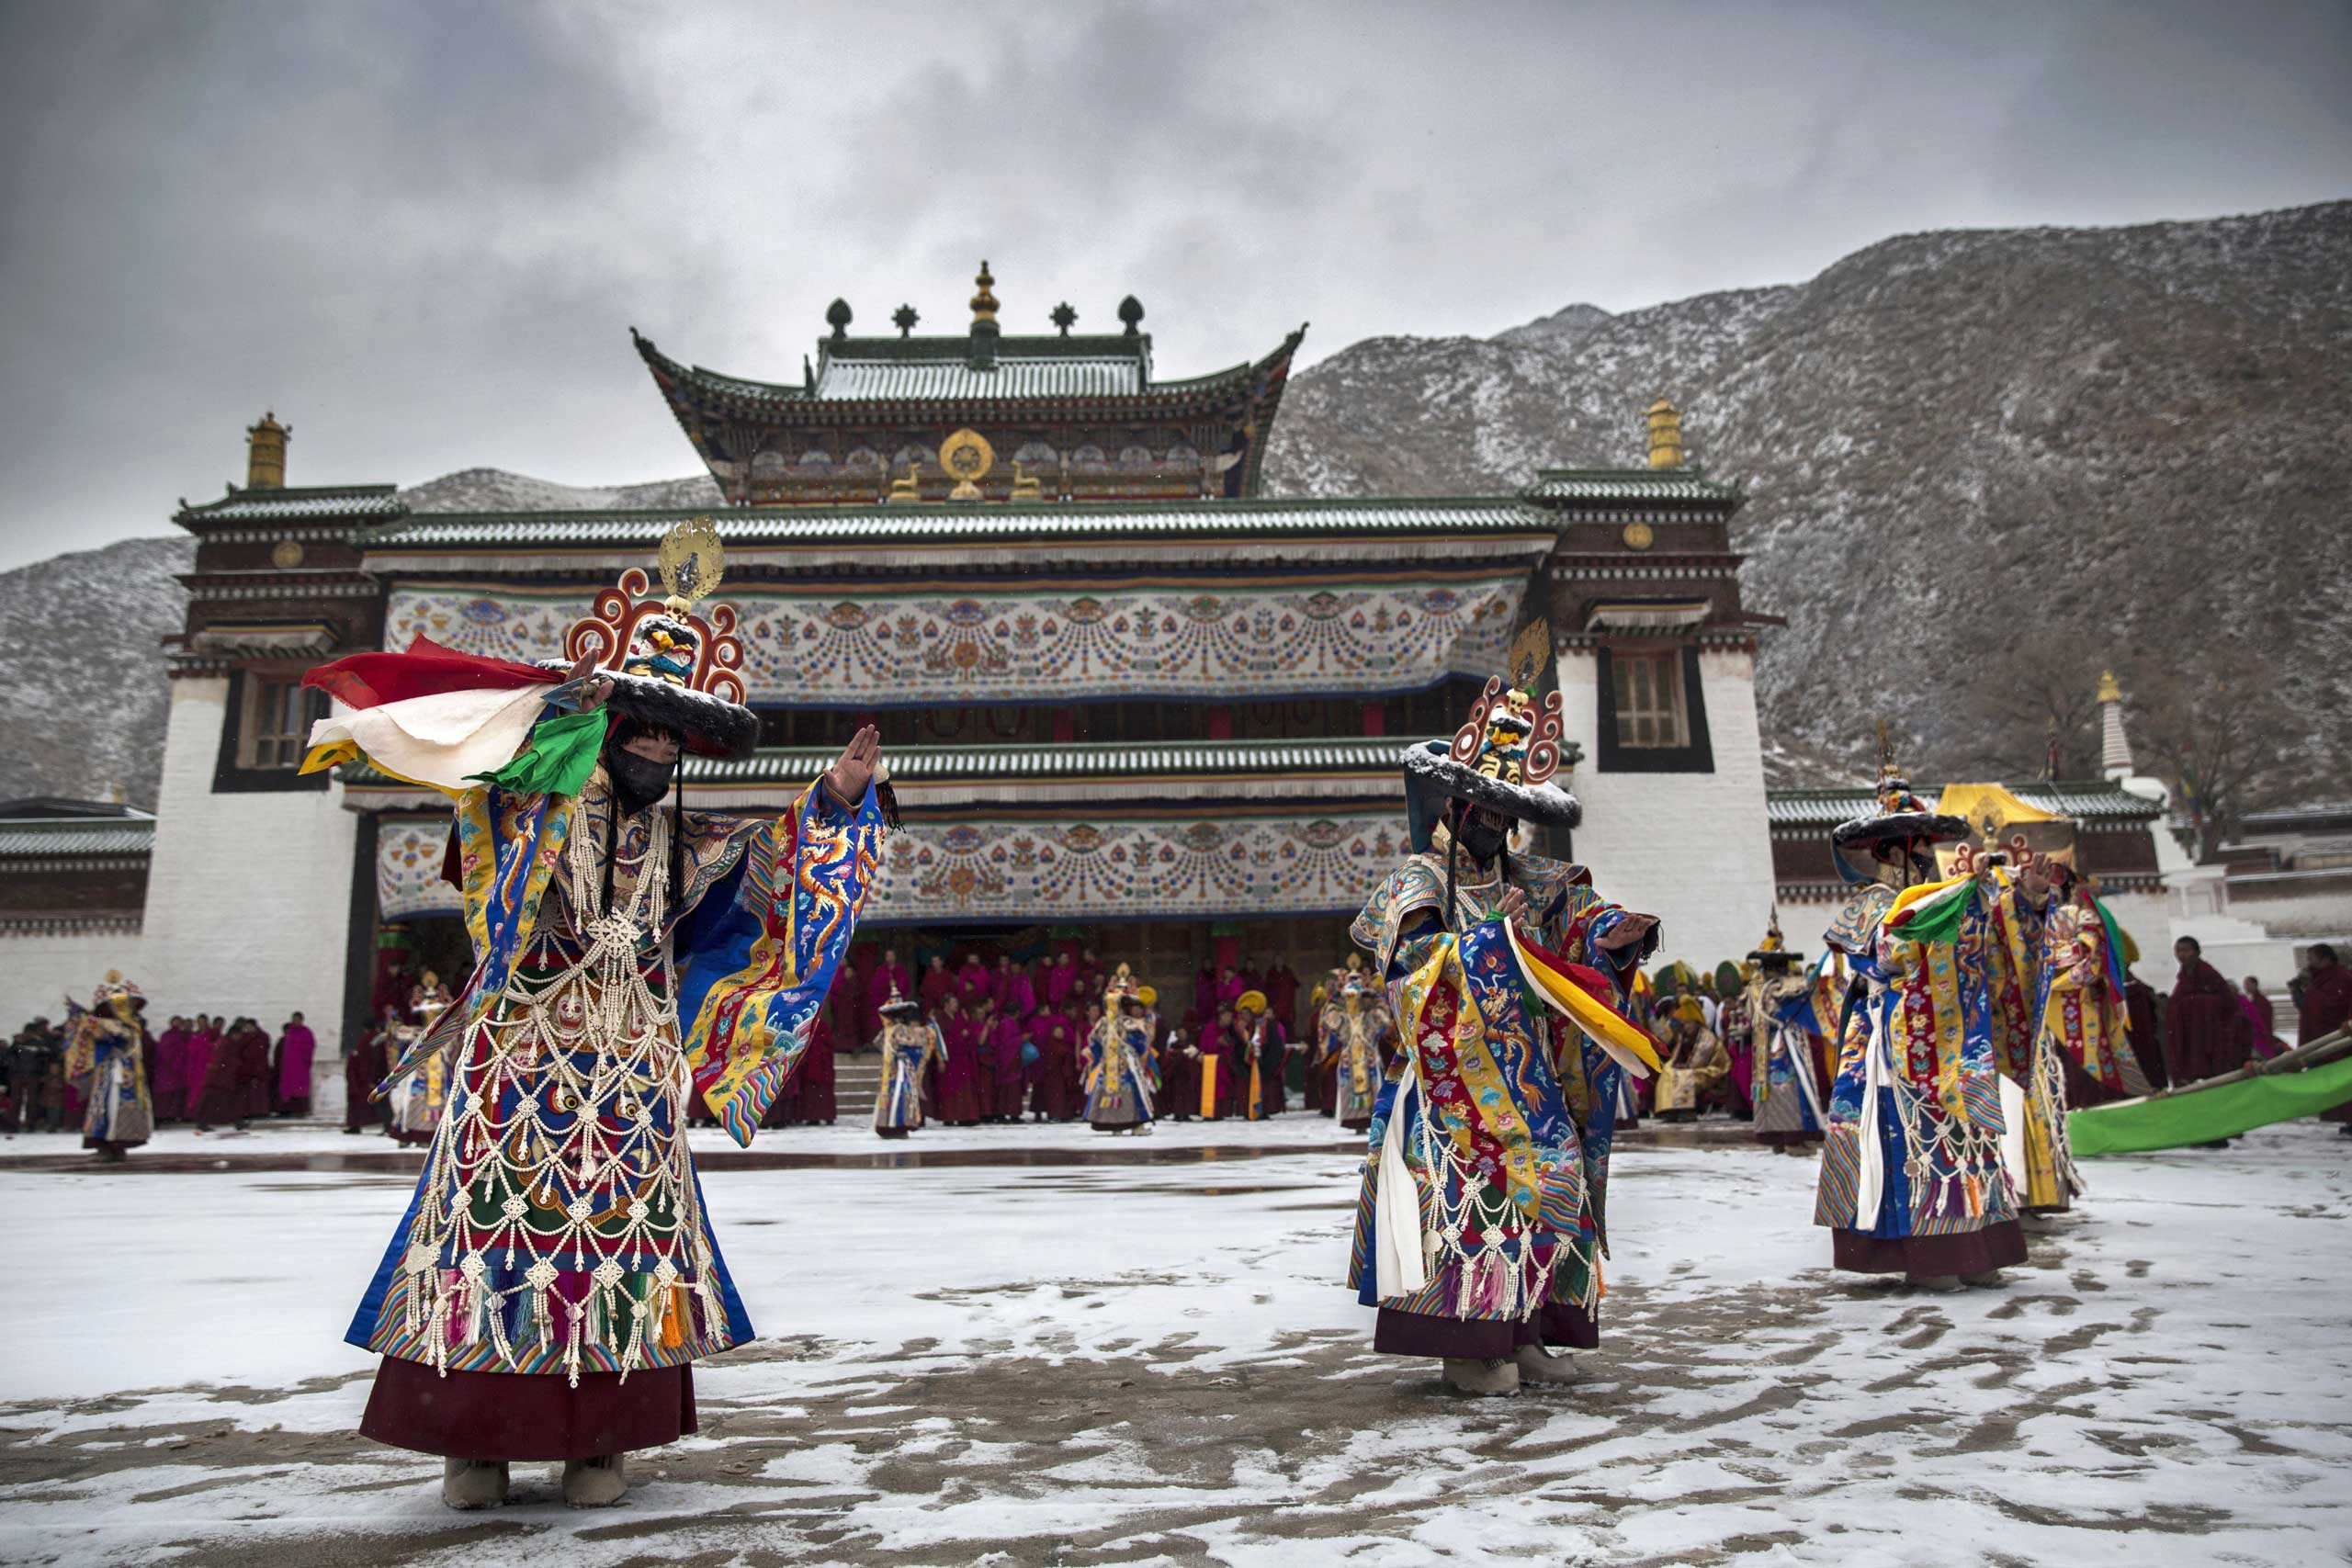 Tibetan Buddhist monks perform a black hat dance during Monlam or the Great Prayer rituals on March 4, 2015 at the Labrang Monastery.